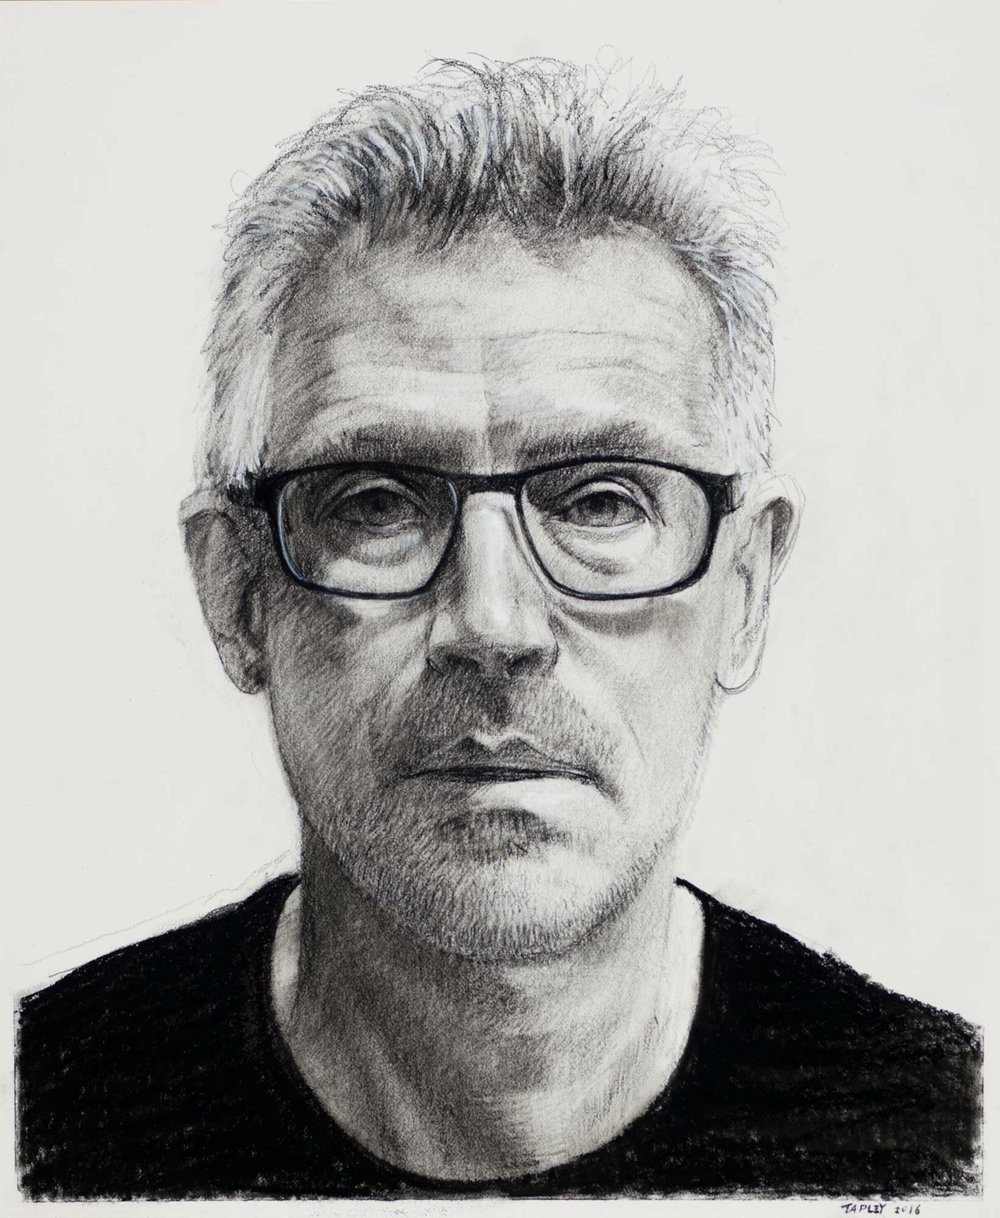 Self-Portrait, October 2016